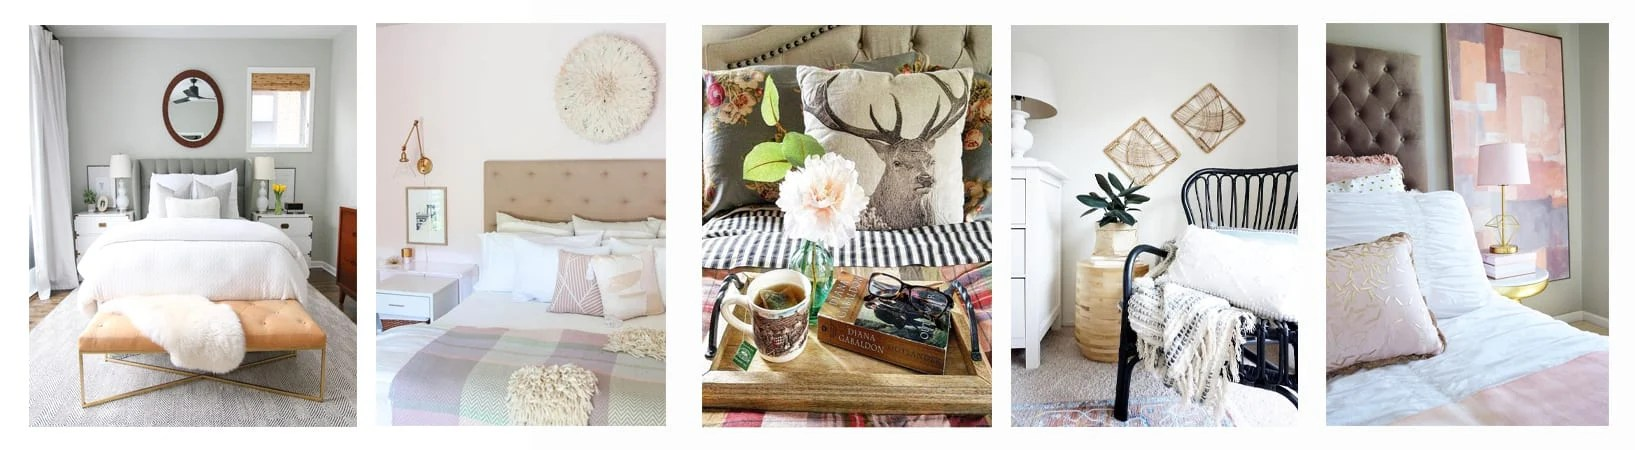 Thursday beautiful bedrooms tour